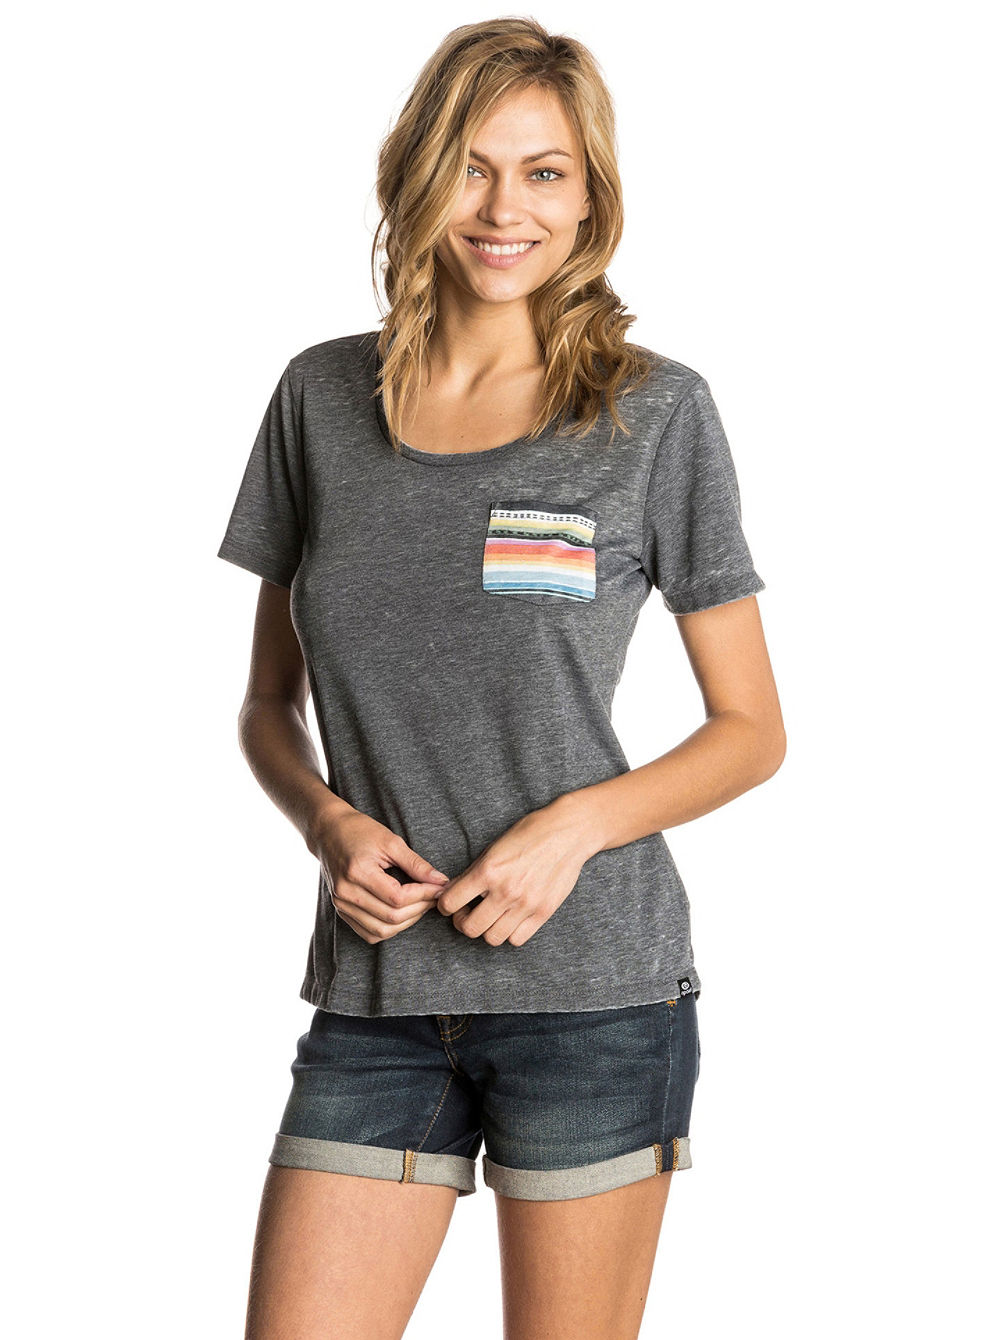 Pass Pocket T-Shirt